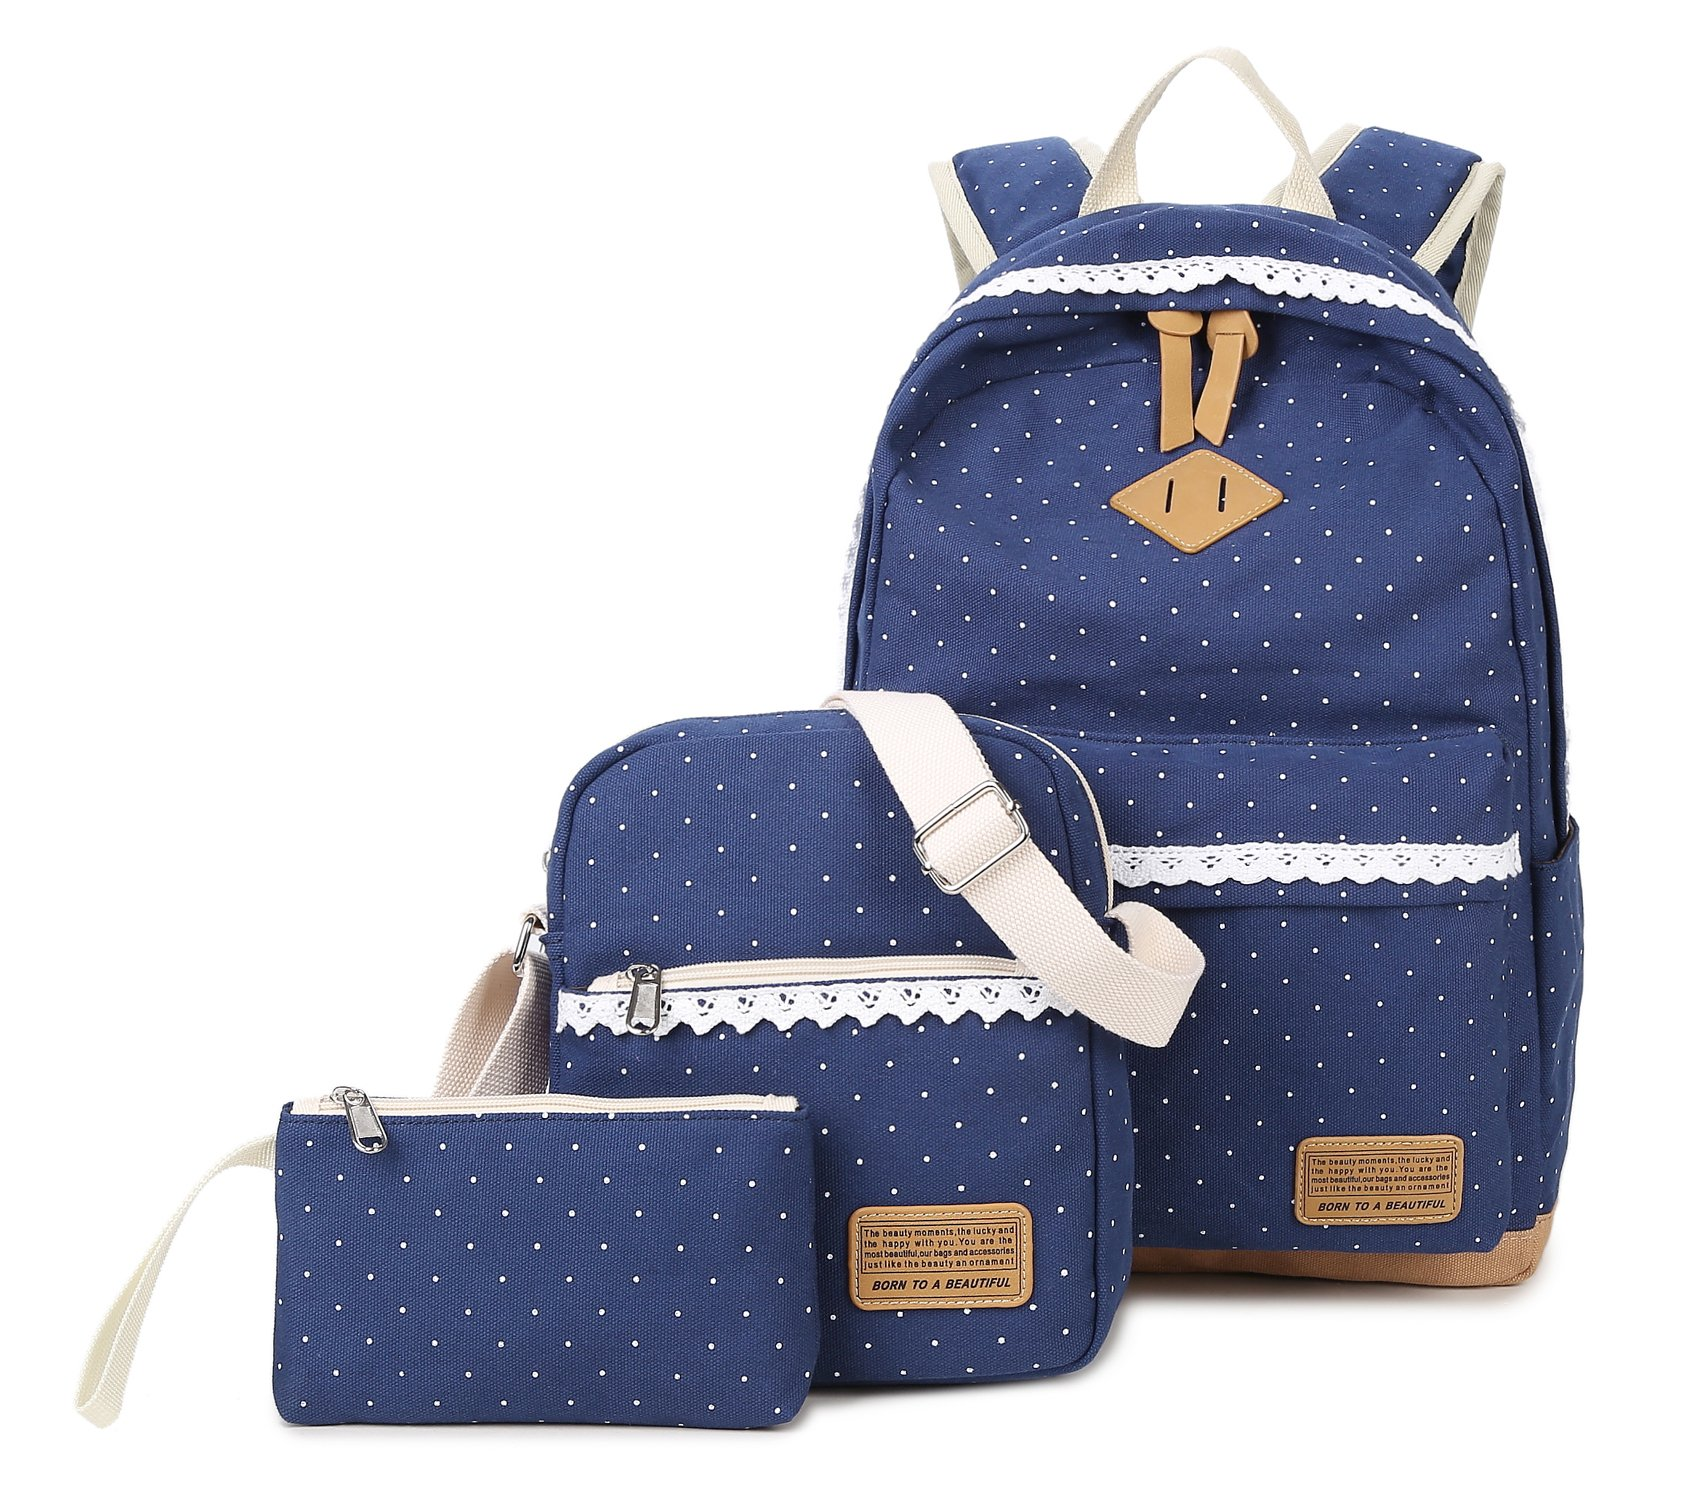 Tibes Canvas Backpack Middle School Backpack 3pcs Set Daypack Blue